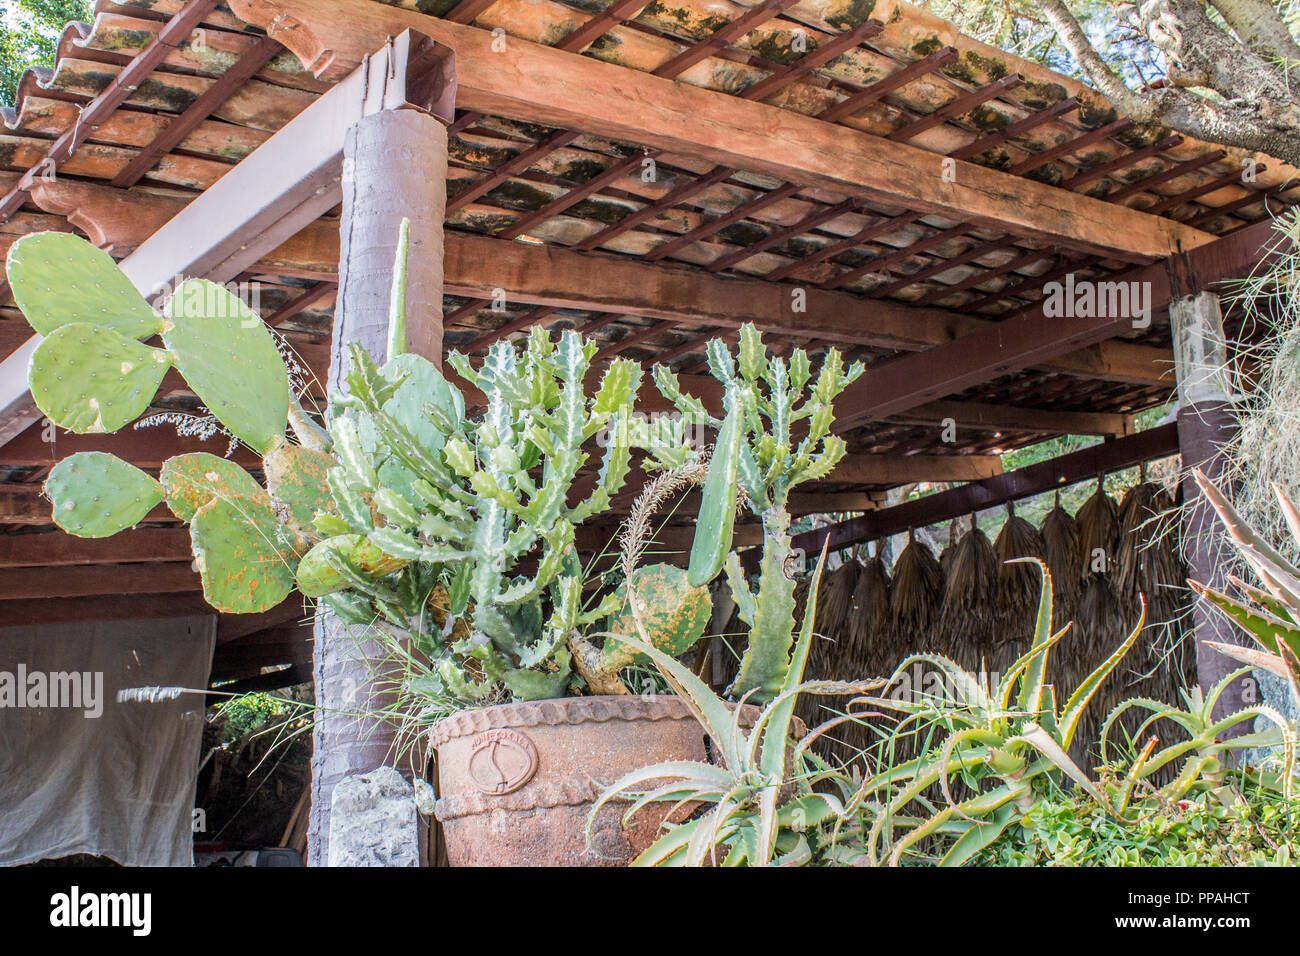 mage of cactus in pots on a terrace with tile roof - Stock Image